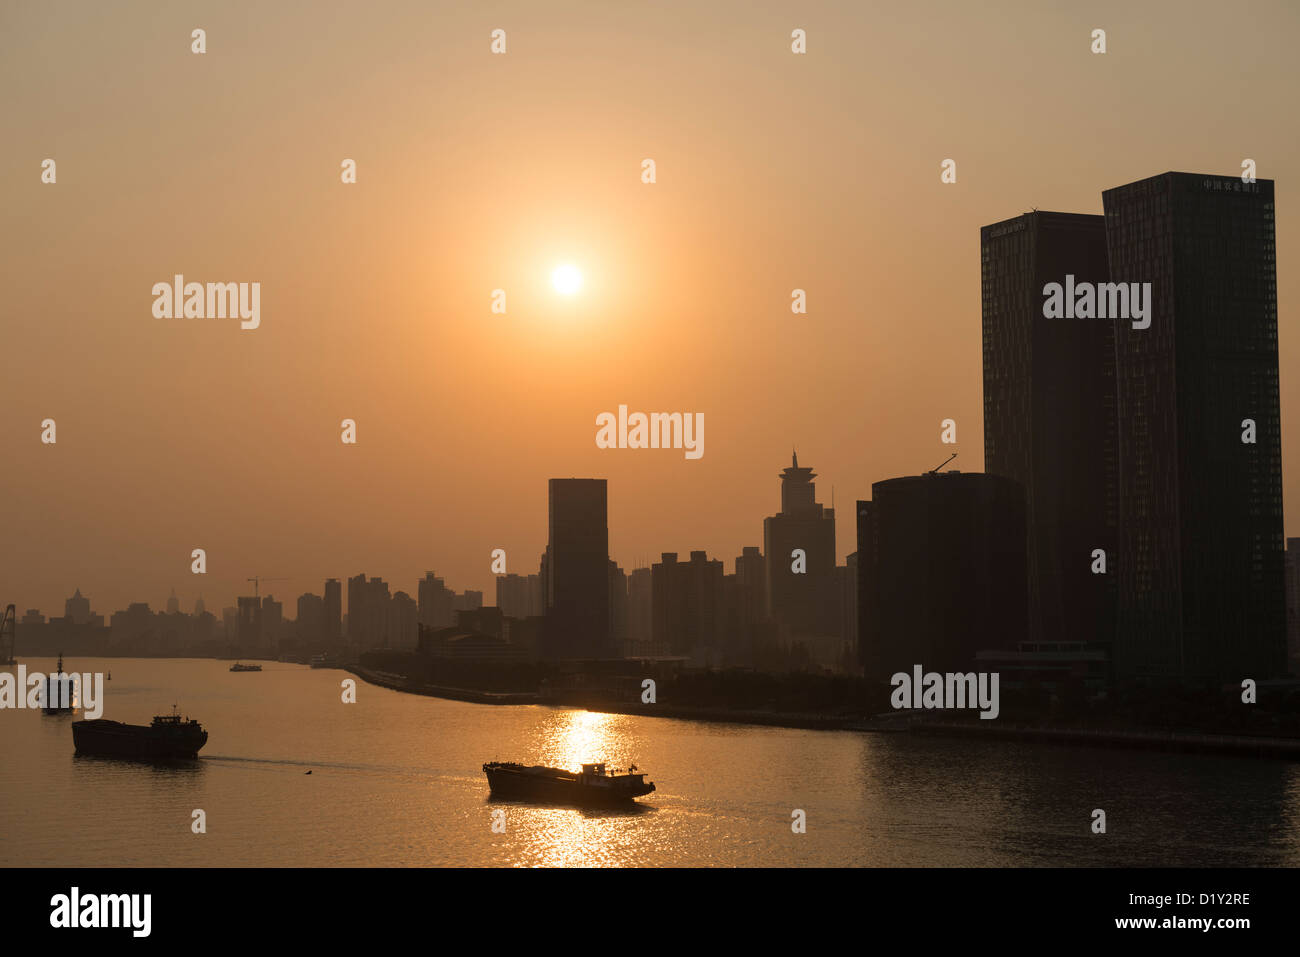 Dramatic View of the Huangpu River and Pudong Skyline at Sunrise, Shanghai, China - Stock Image